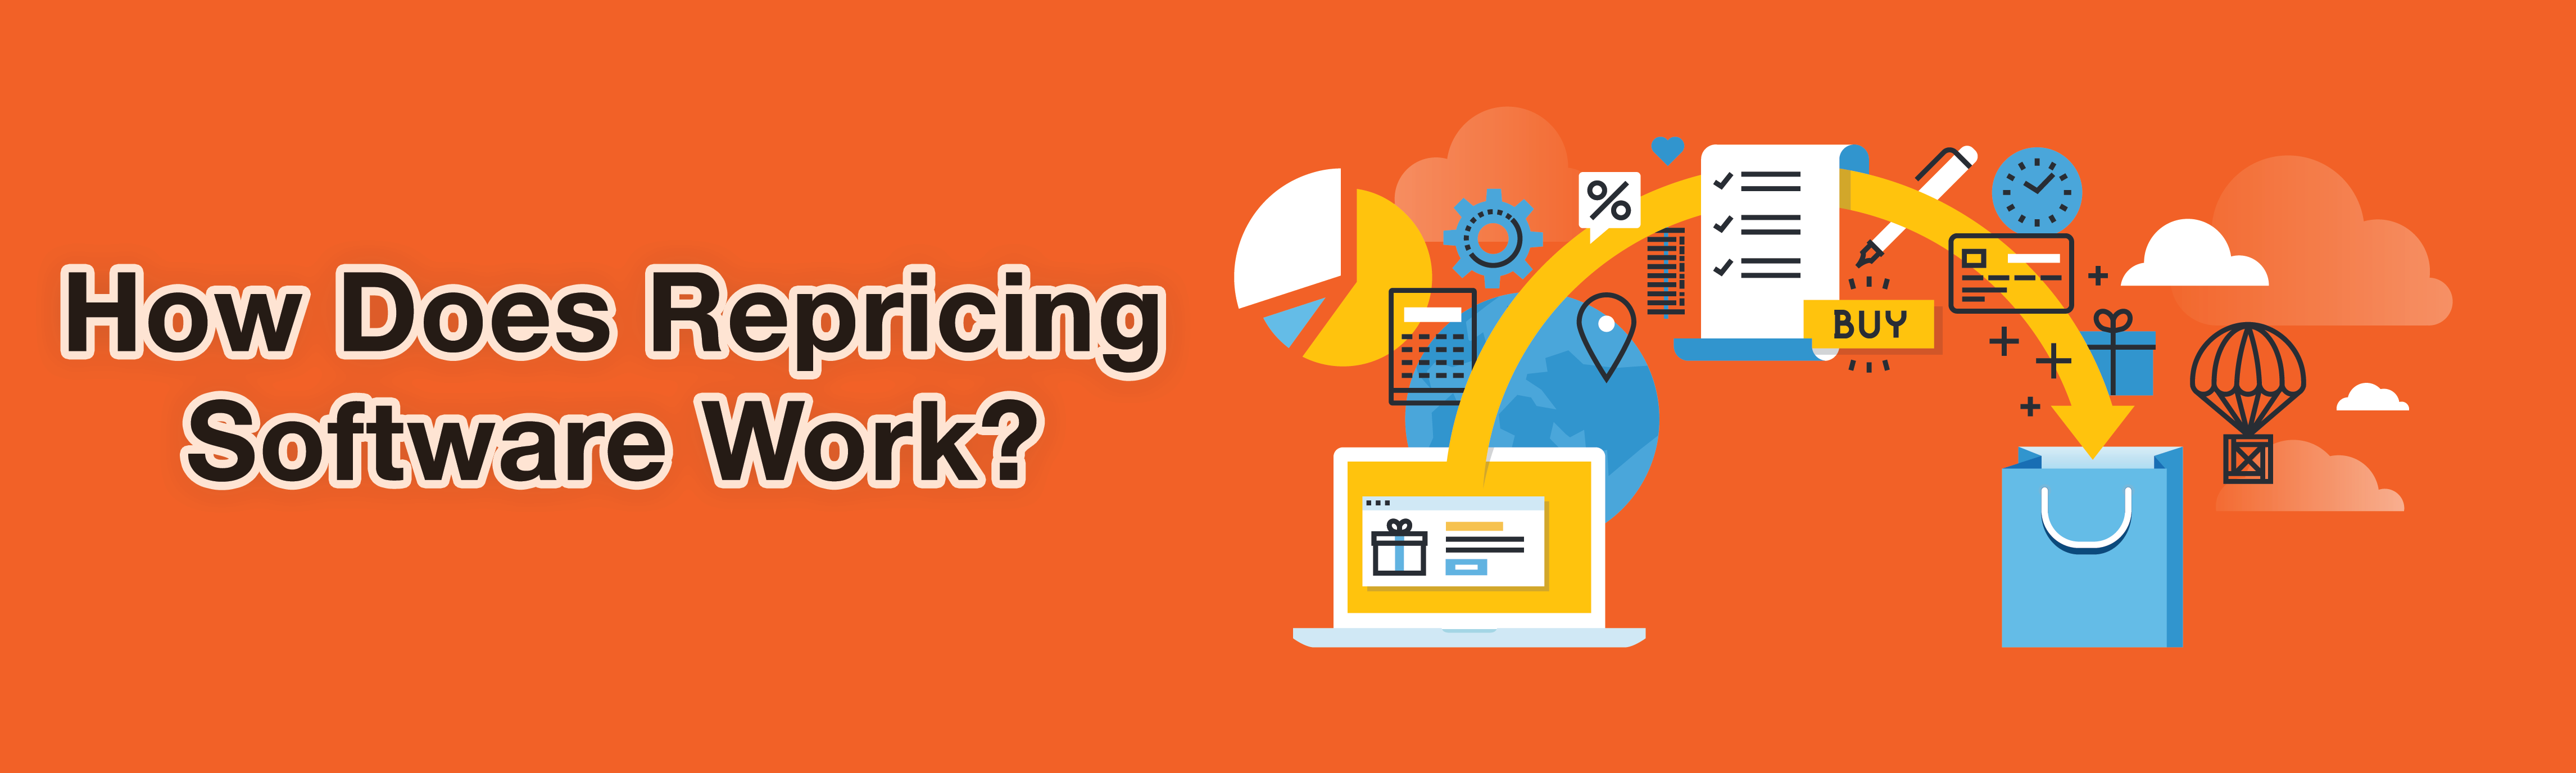 An orange graphic of how repricing software work